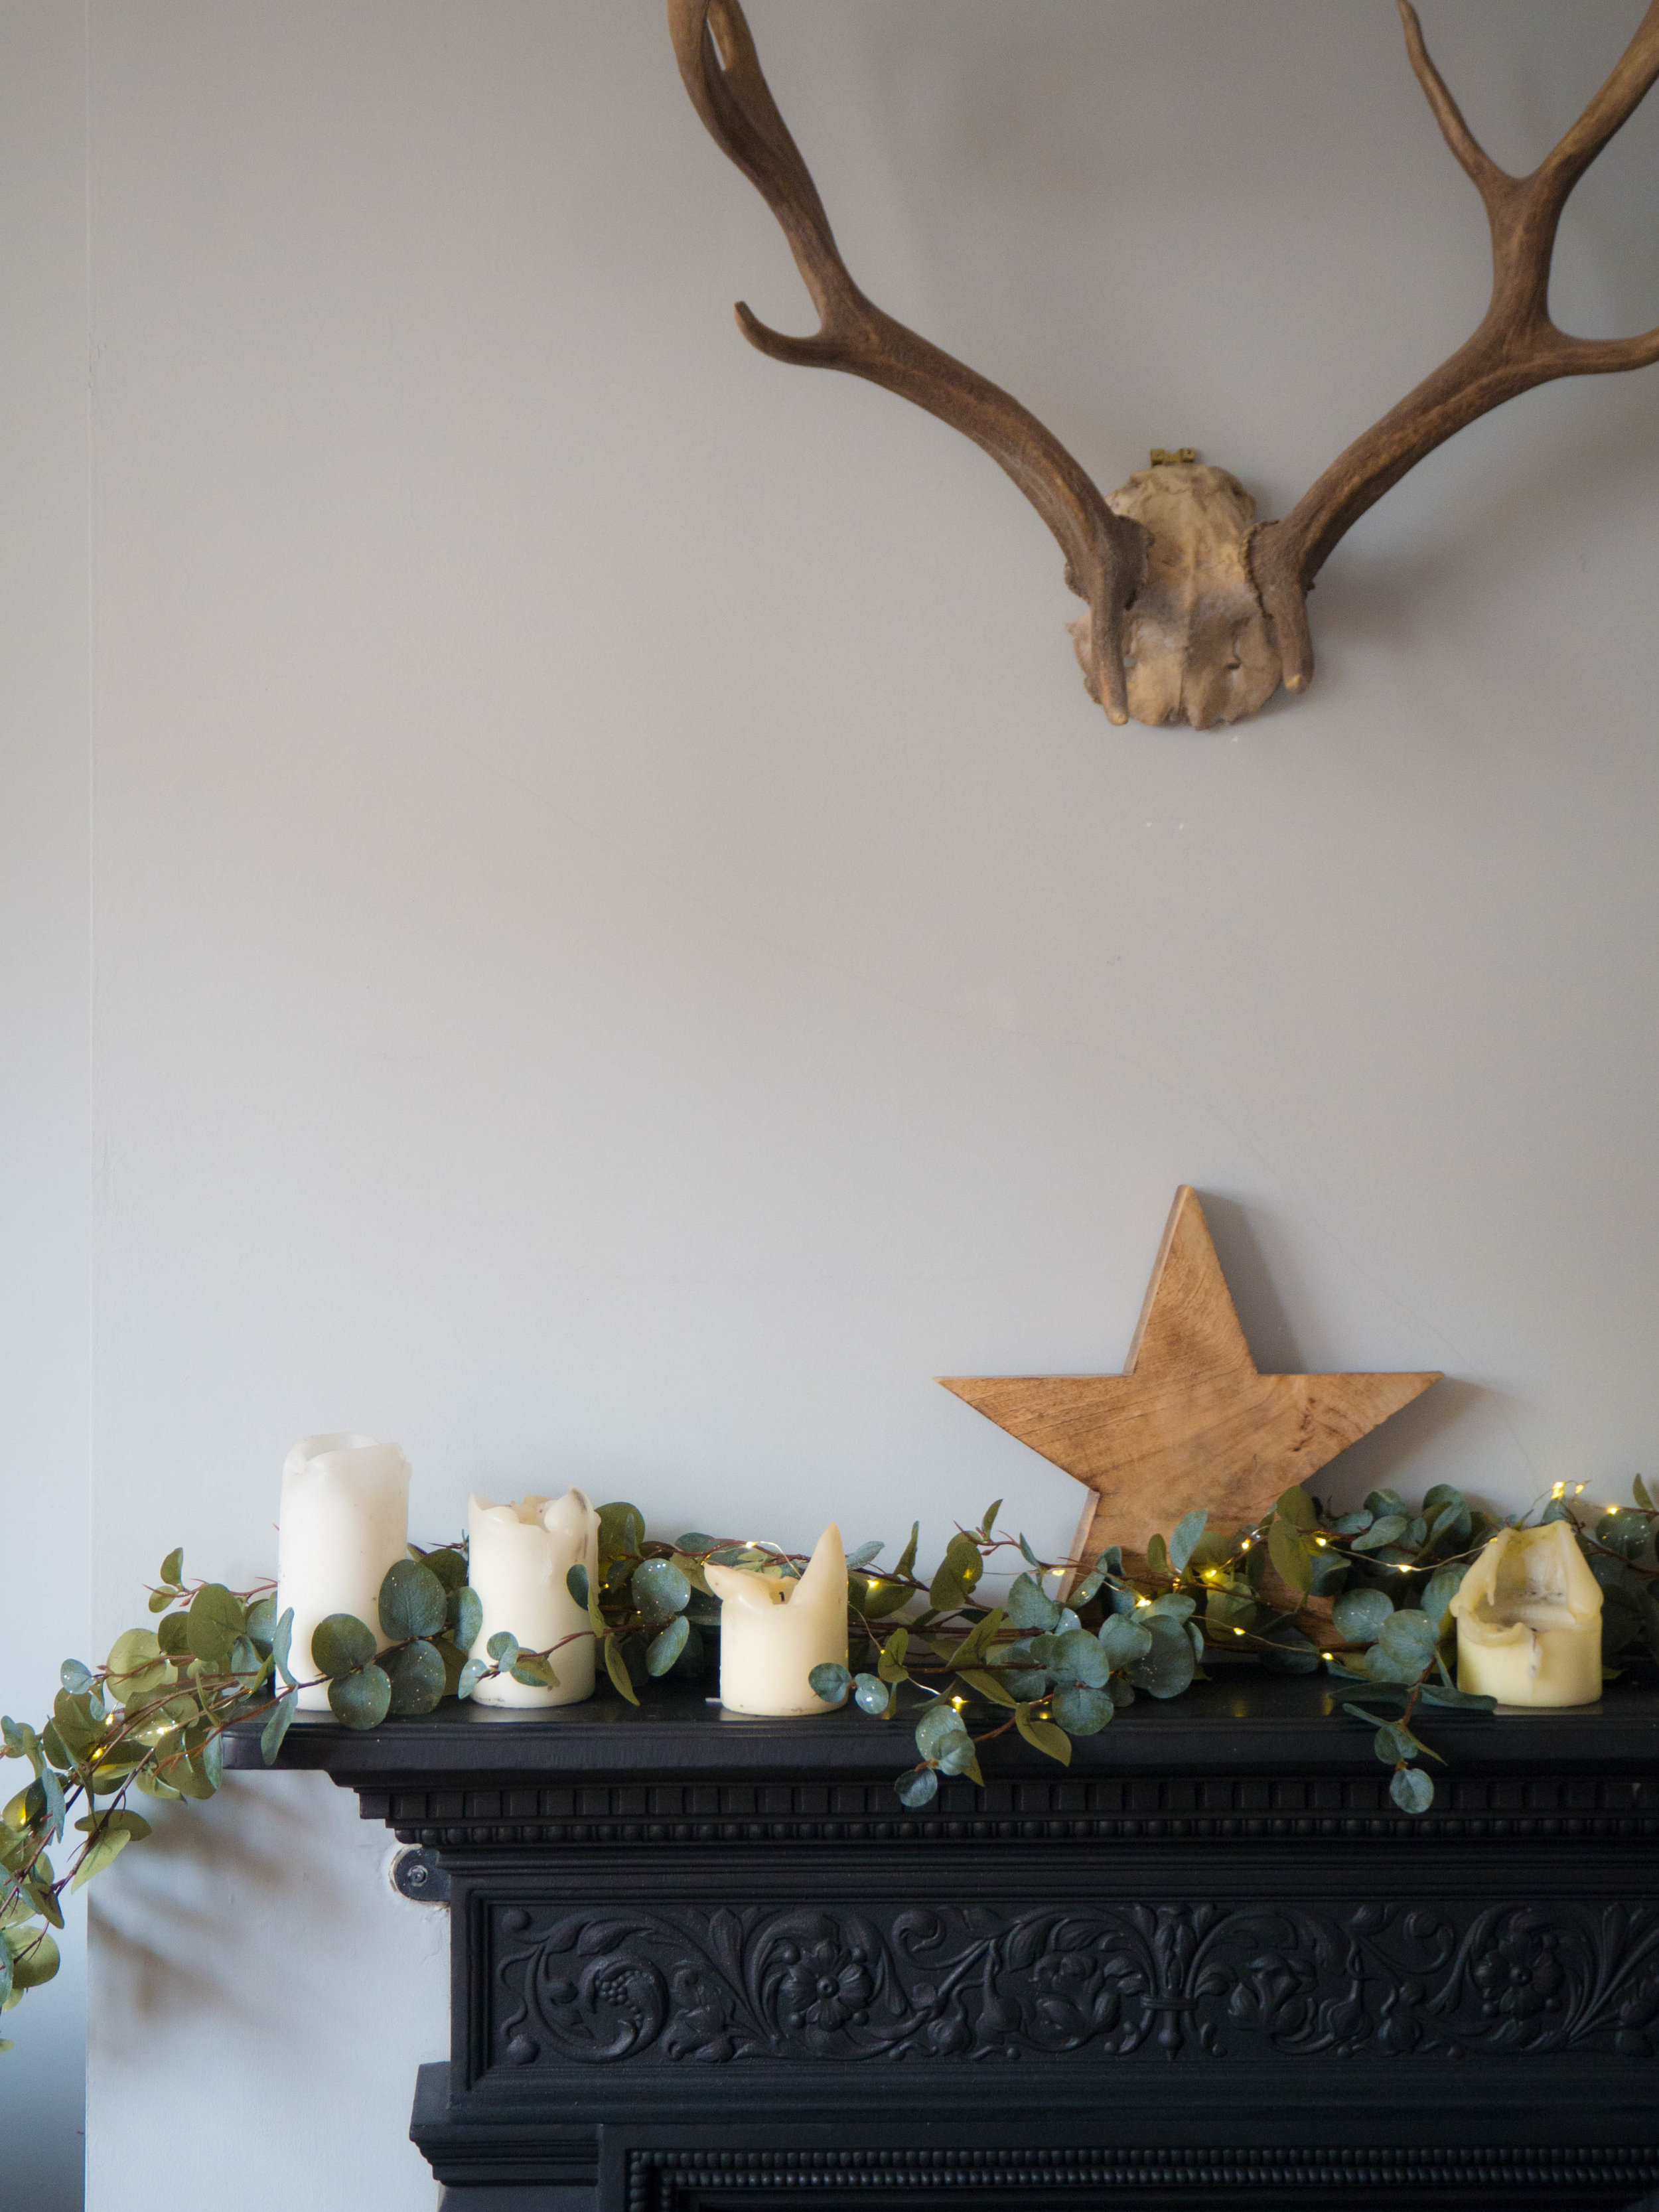 Fire place mantle with Faux garland. Christmas decorations on the blog.